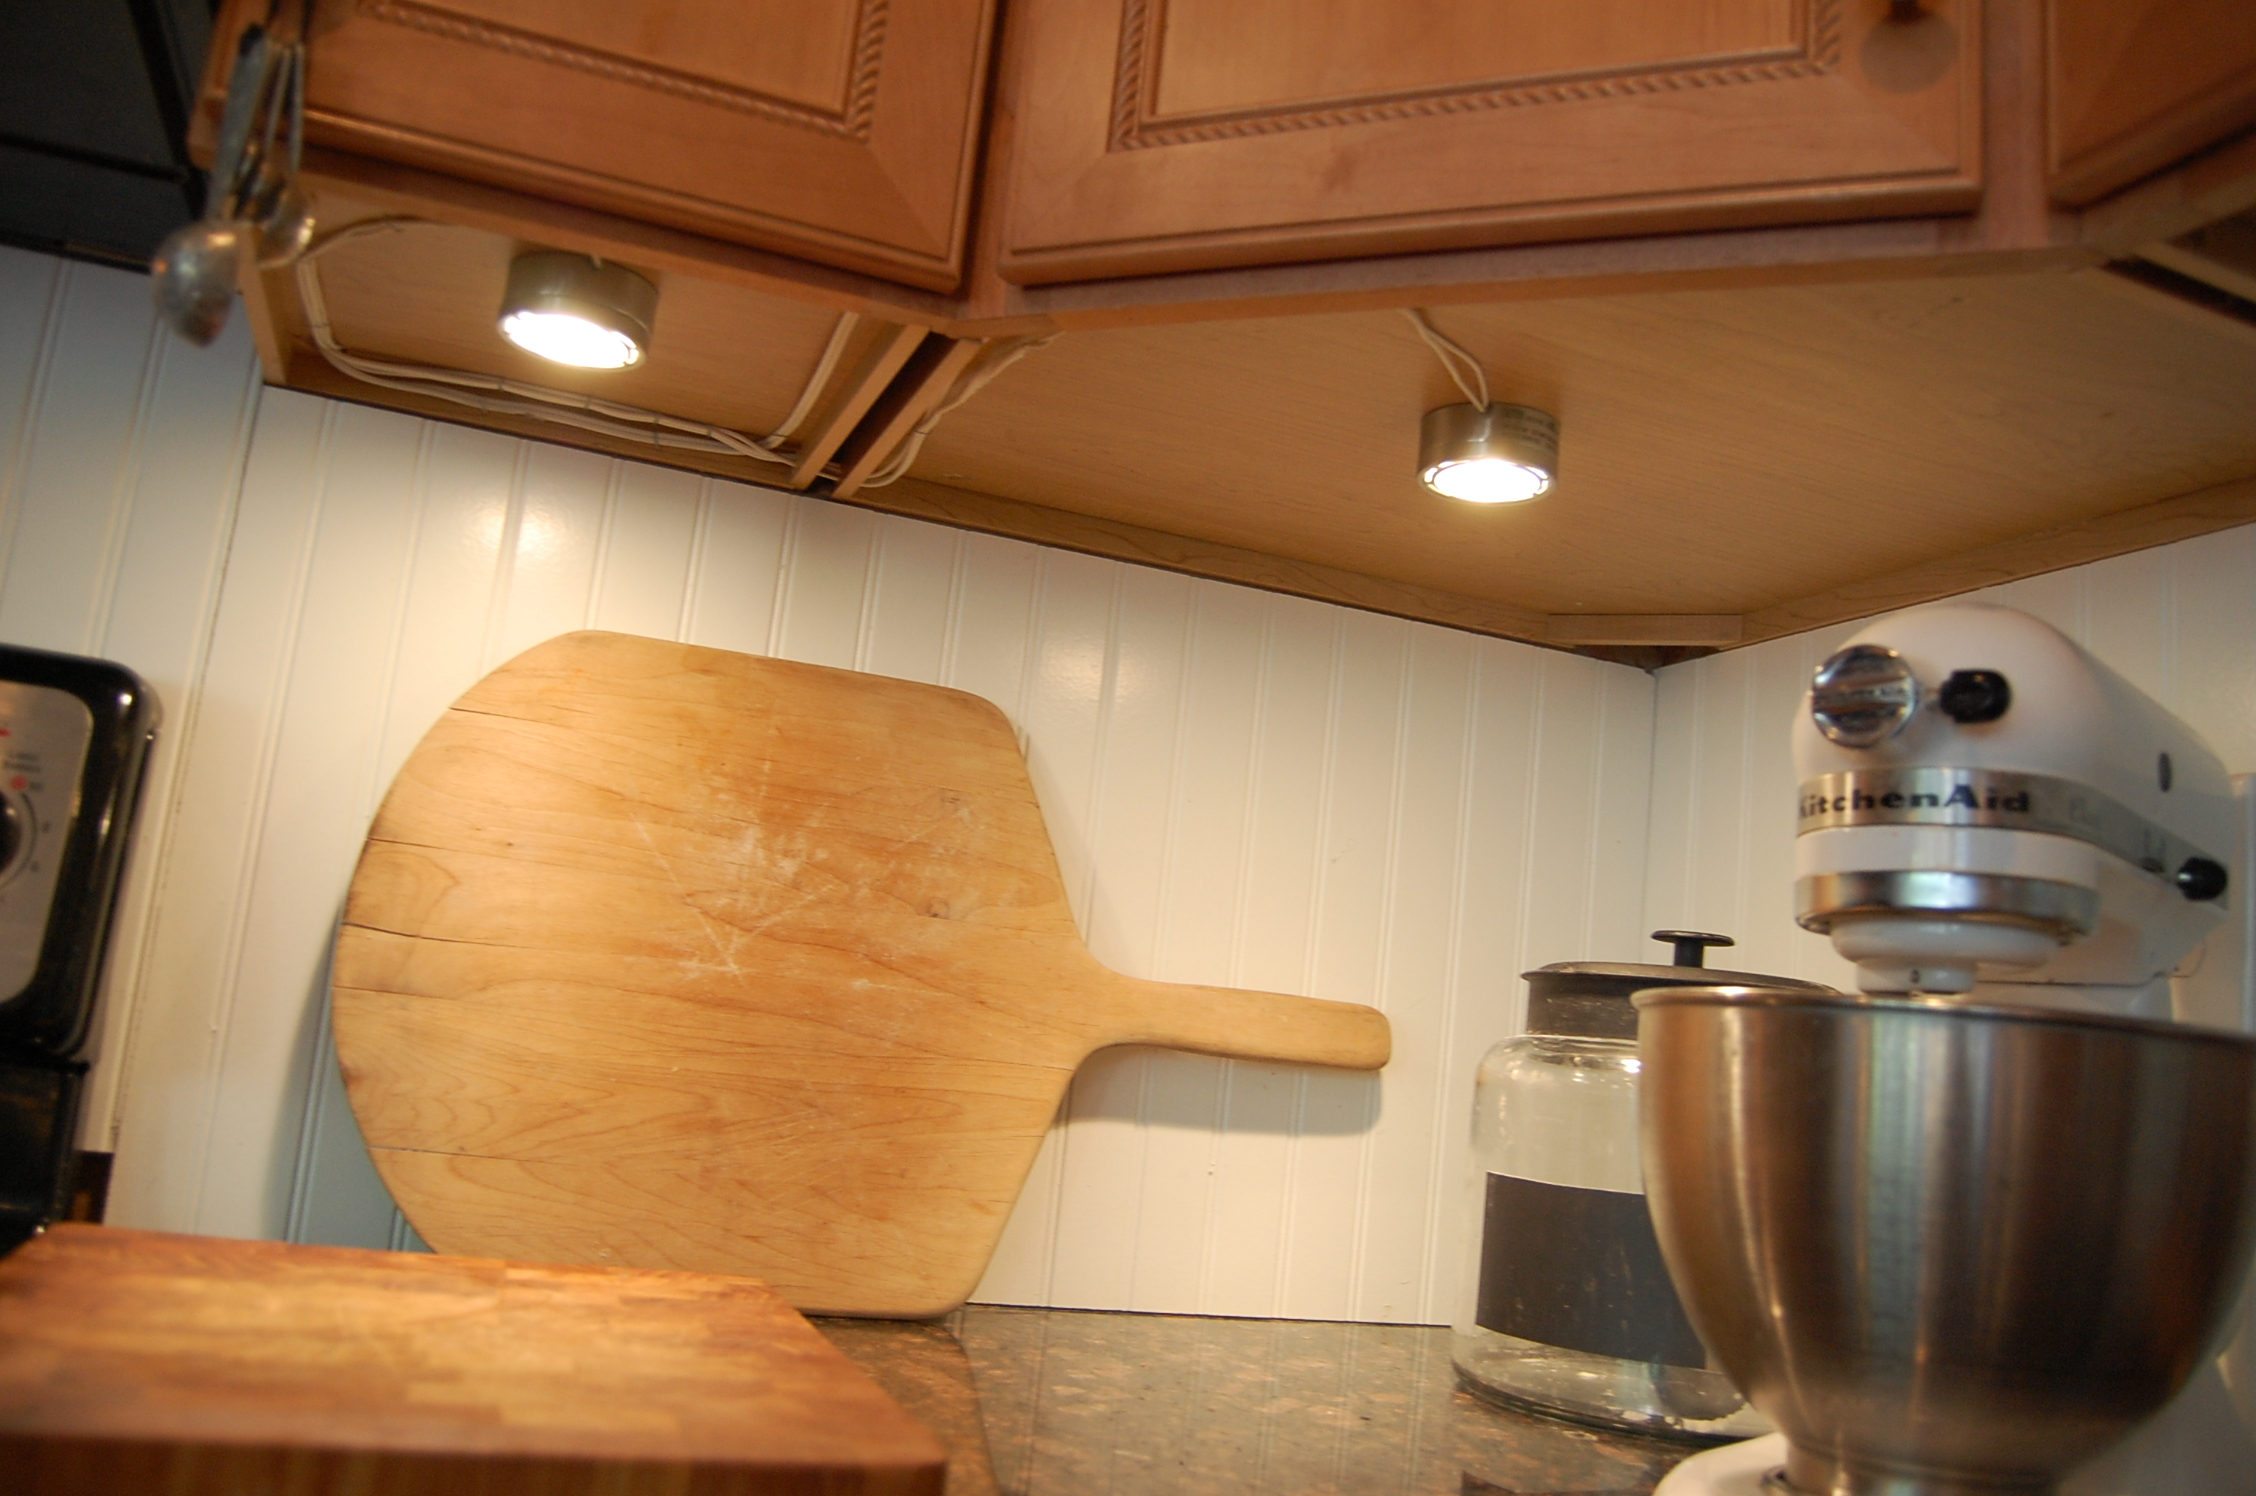 Kitchen Cabinets Under Lighting Installing The Under Cabinet Lighting Ikea Home Decor Ideas